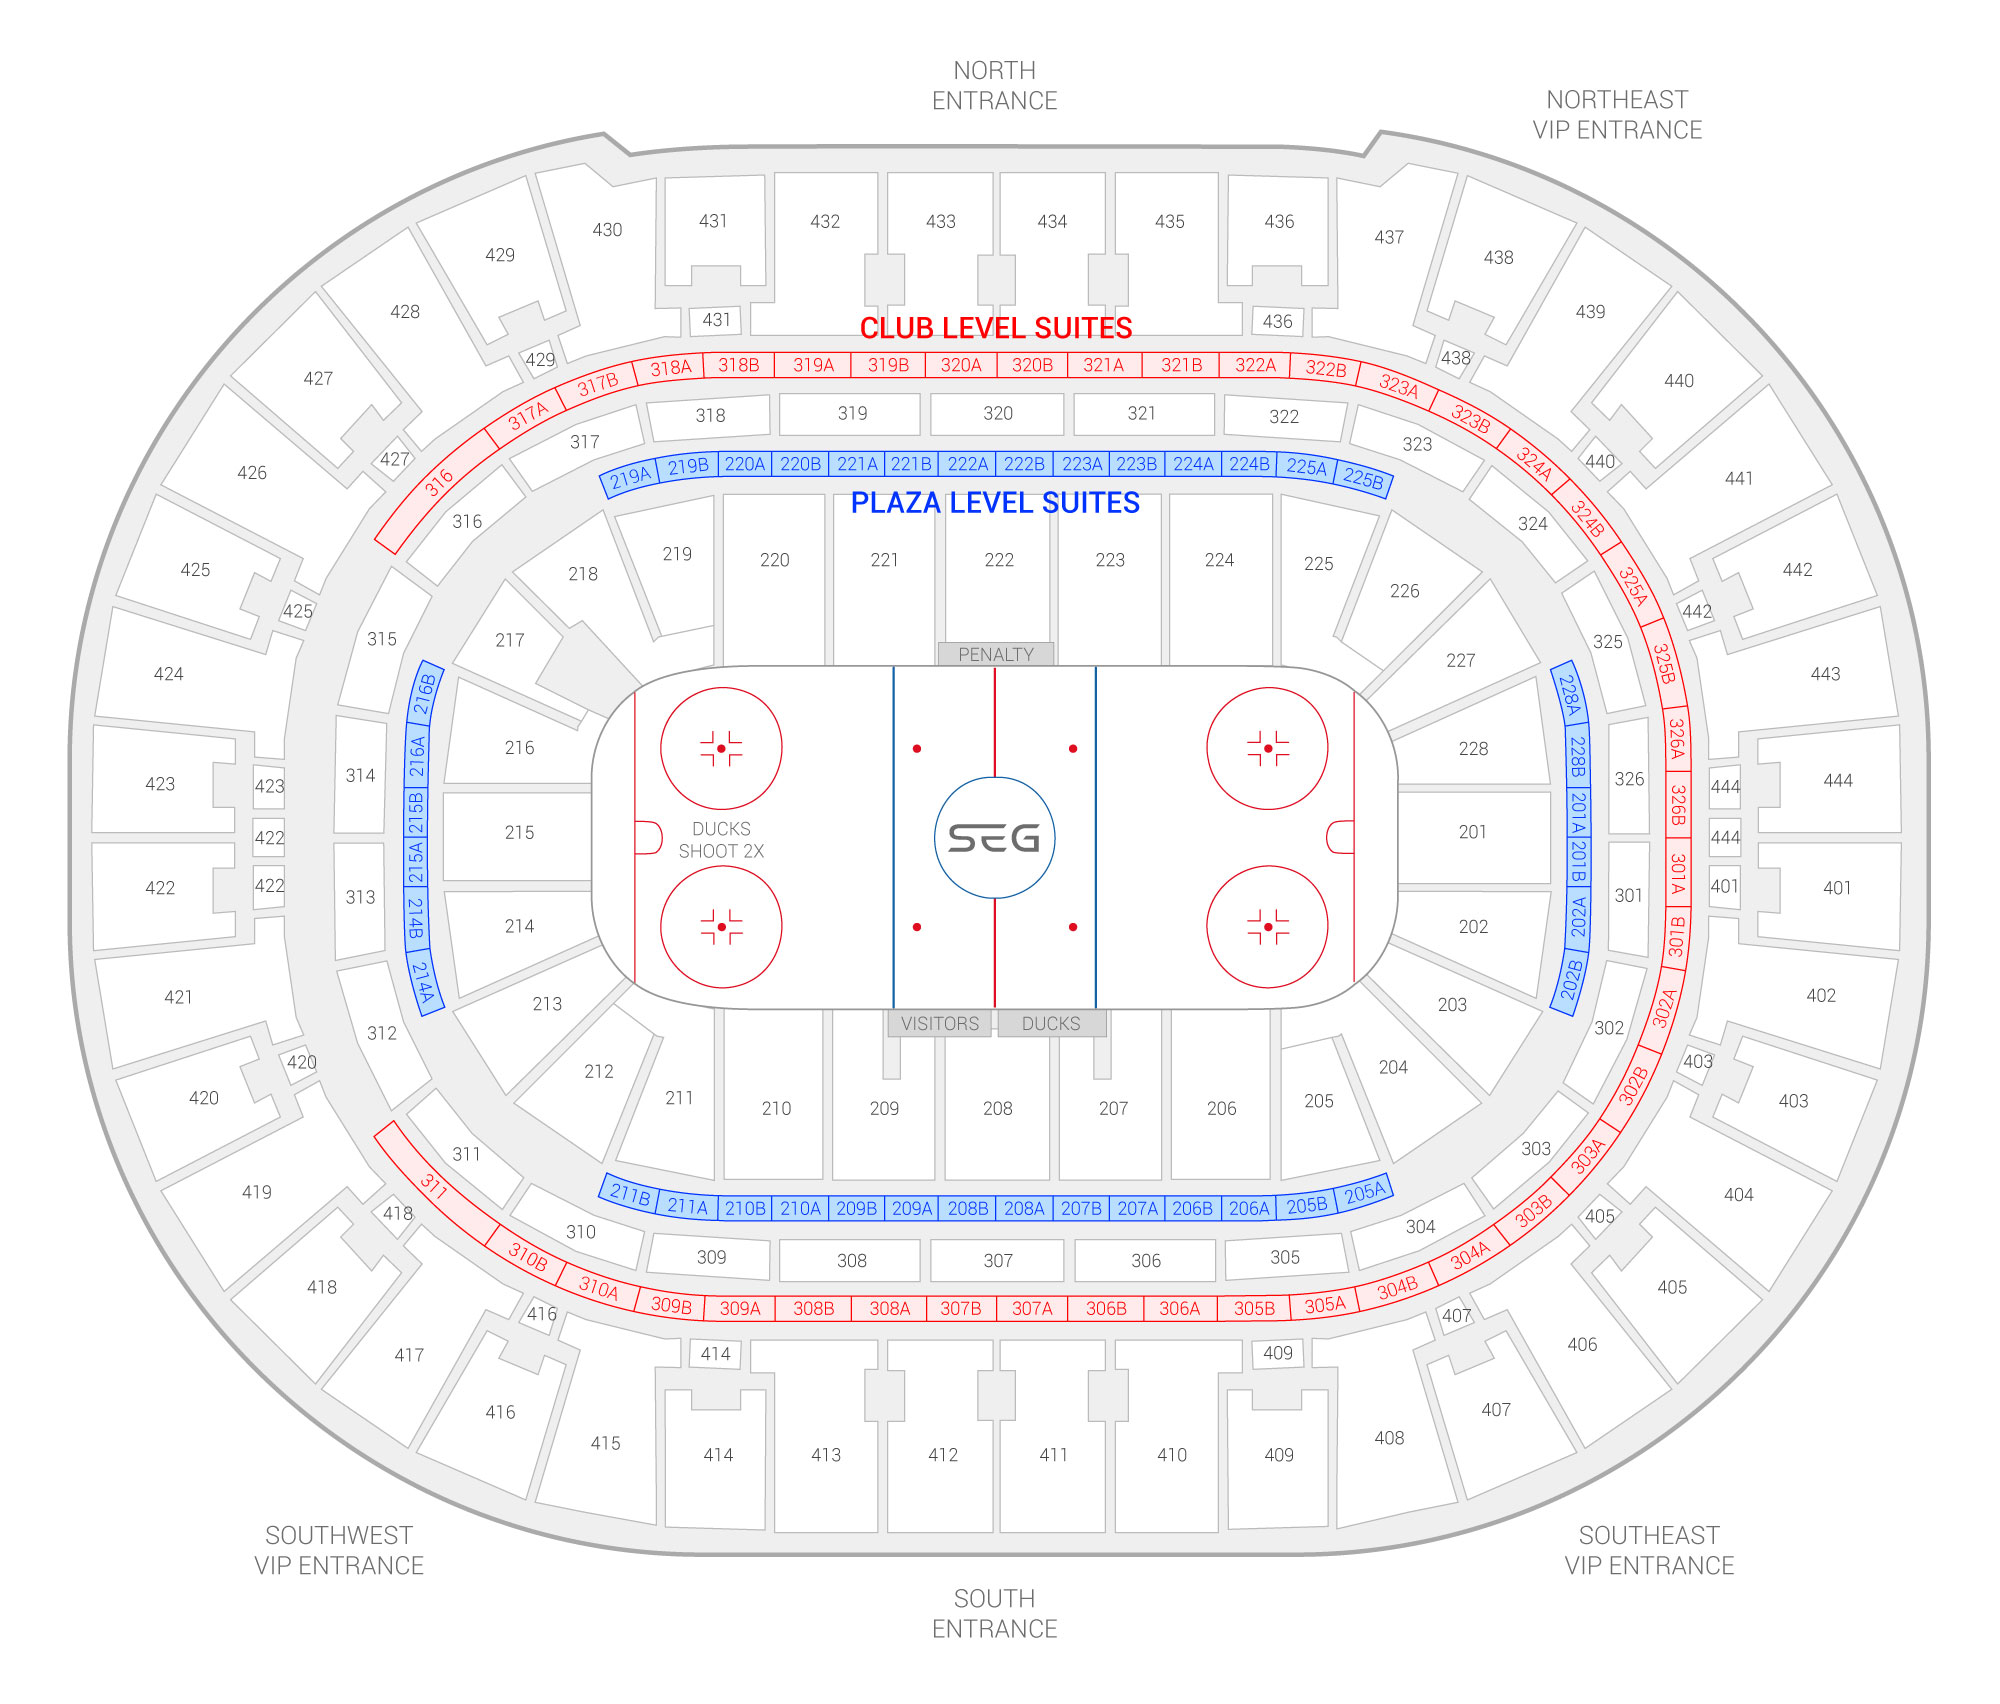 Honda Center / Anaheim Ducks Suite Map and Seating Chart